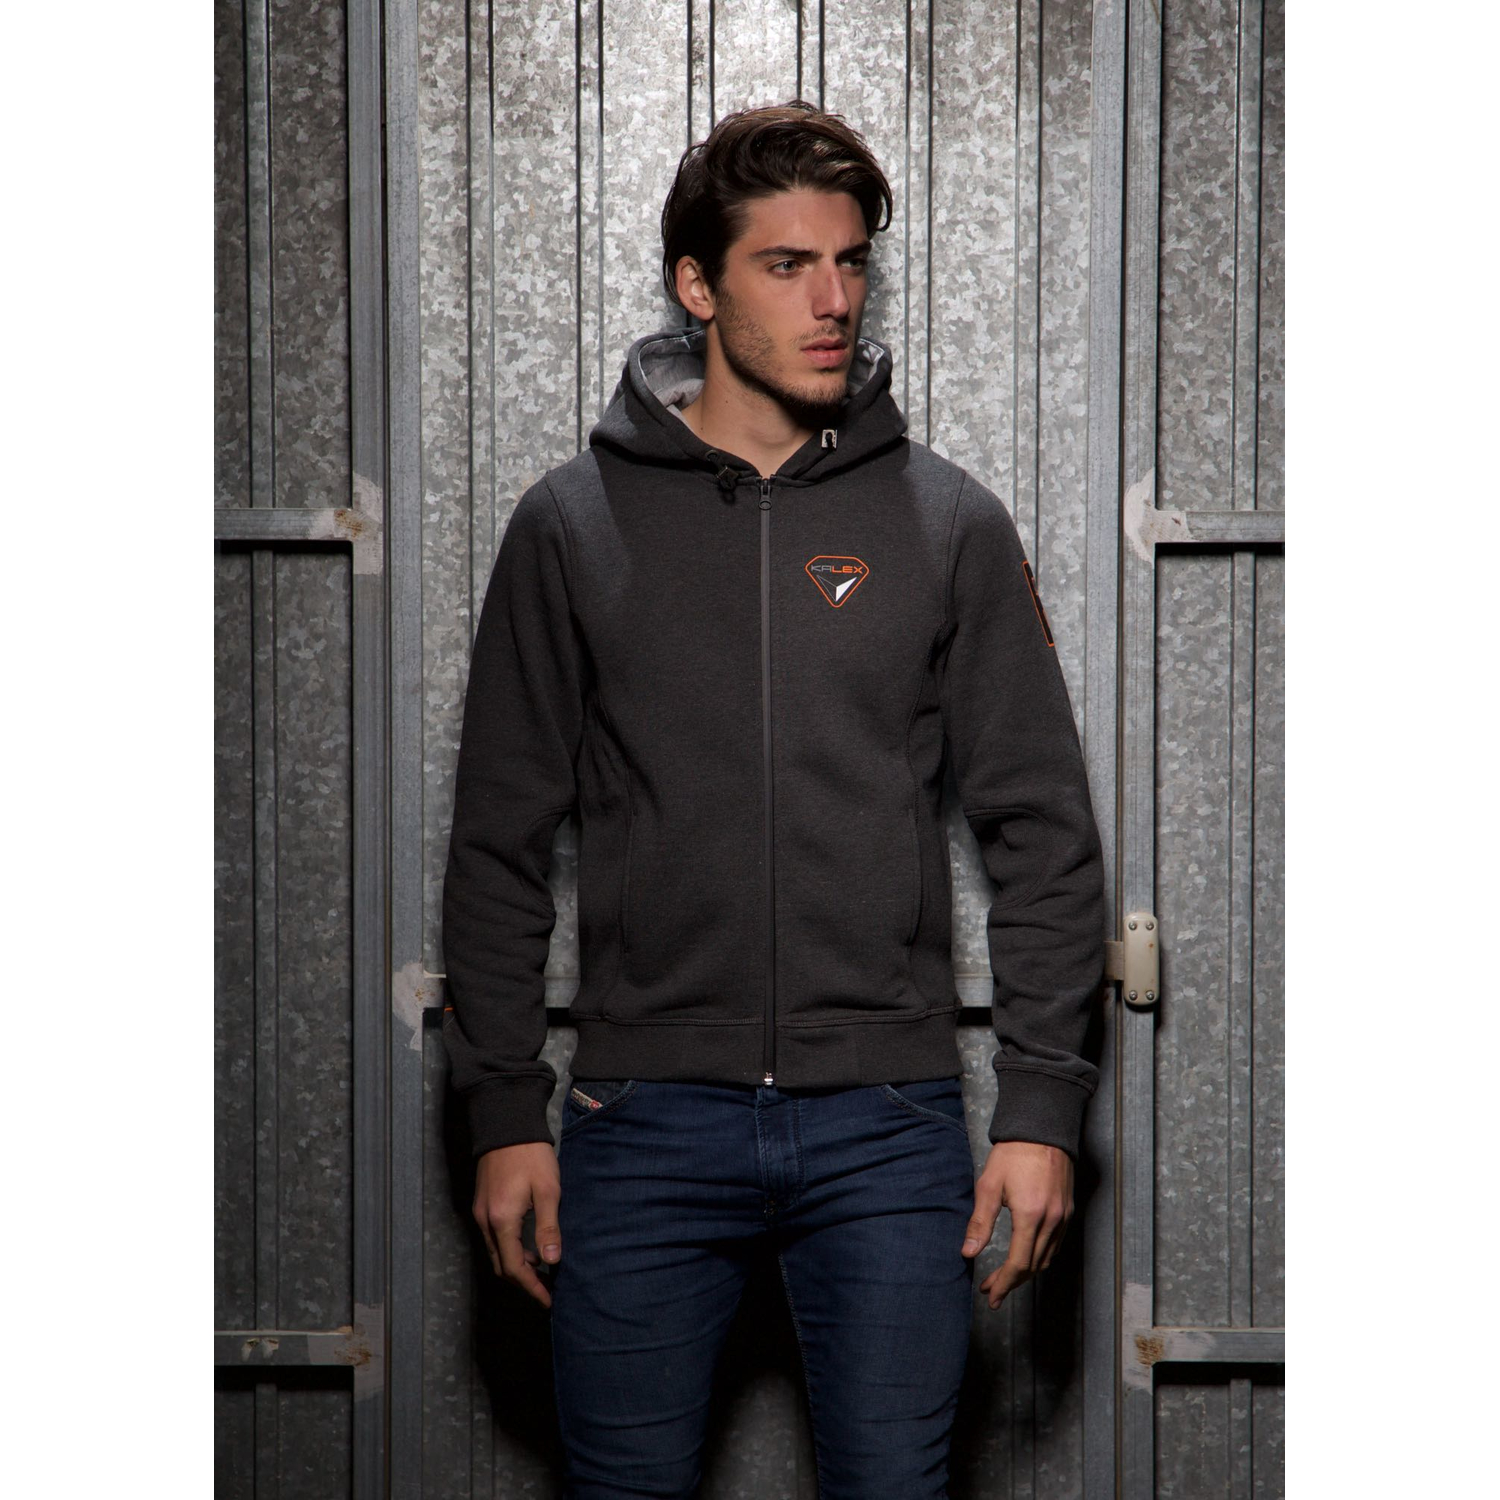 SWEATJACKET ANTHRACITE HEATHER M